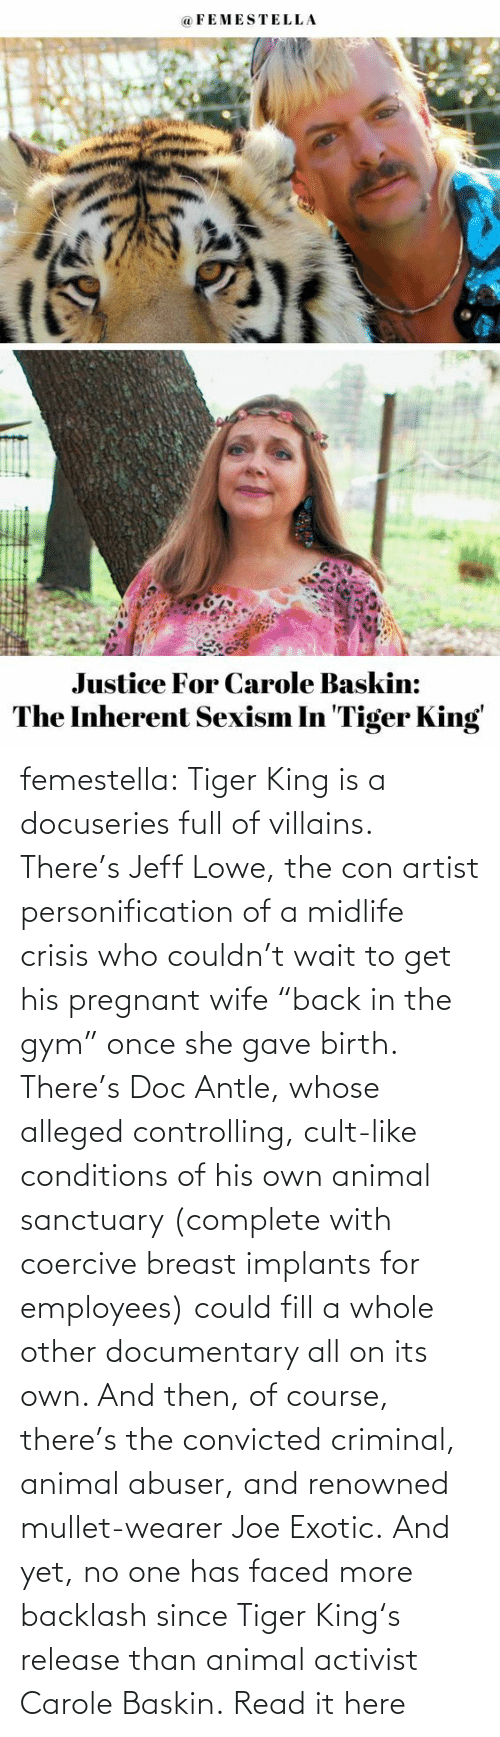 "pregnant: femestella: Tiger King is a docuseries full of villains. There's Jeff Lowe, the con artist personification of a midlife crisis who couldn't wait to get his pregnant wife ""back in the gym"" once she gave birth. There's Doc Antle, whose alleged controlling, cult-like conditions of his own animal sanctuary (complete with coercive breast implants for employees) could fill a whole other documentary all on its own. And then, of course, there's the convicted criminal, animal abuser, and renowned mullet-wearer Joe Exotic. And yet, no one has faced more backlash since Tiger King's release than animal activist Carole Baskin. Read it here"